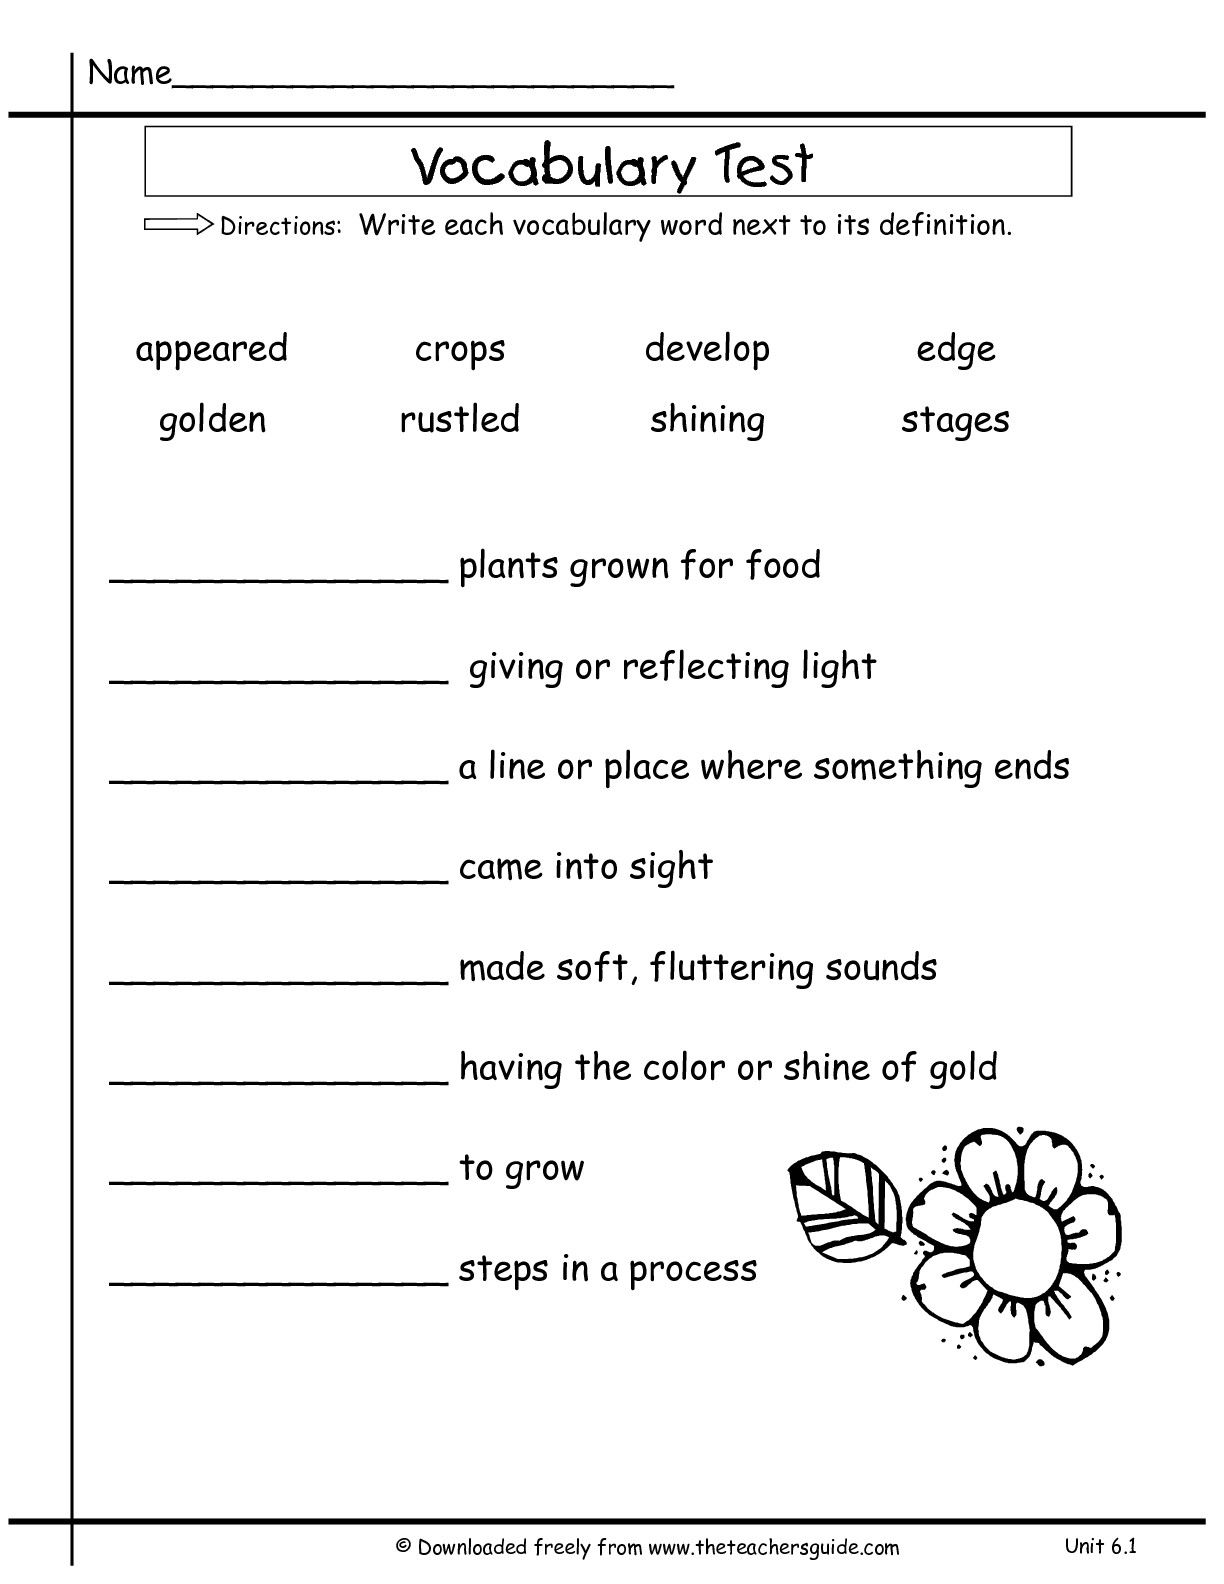 Since Elementary School I Have Been Brought Up With All Sorts Of Vocabulary Tests Up Un Vocabulary Worksheets 1st Grade Worksheets Subtraction Facts Worksheet [ 1584 x 1224 Pixel ]